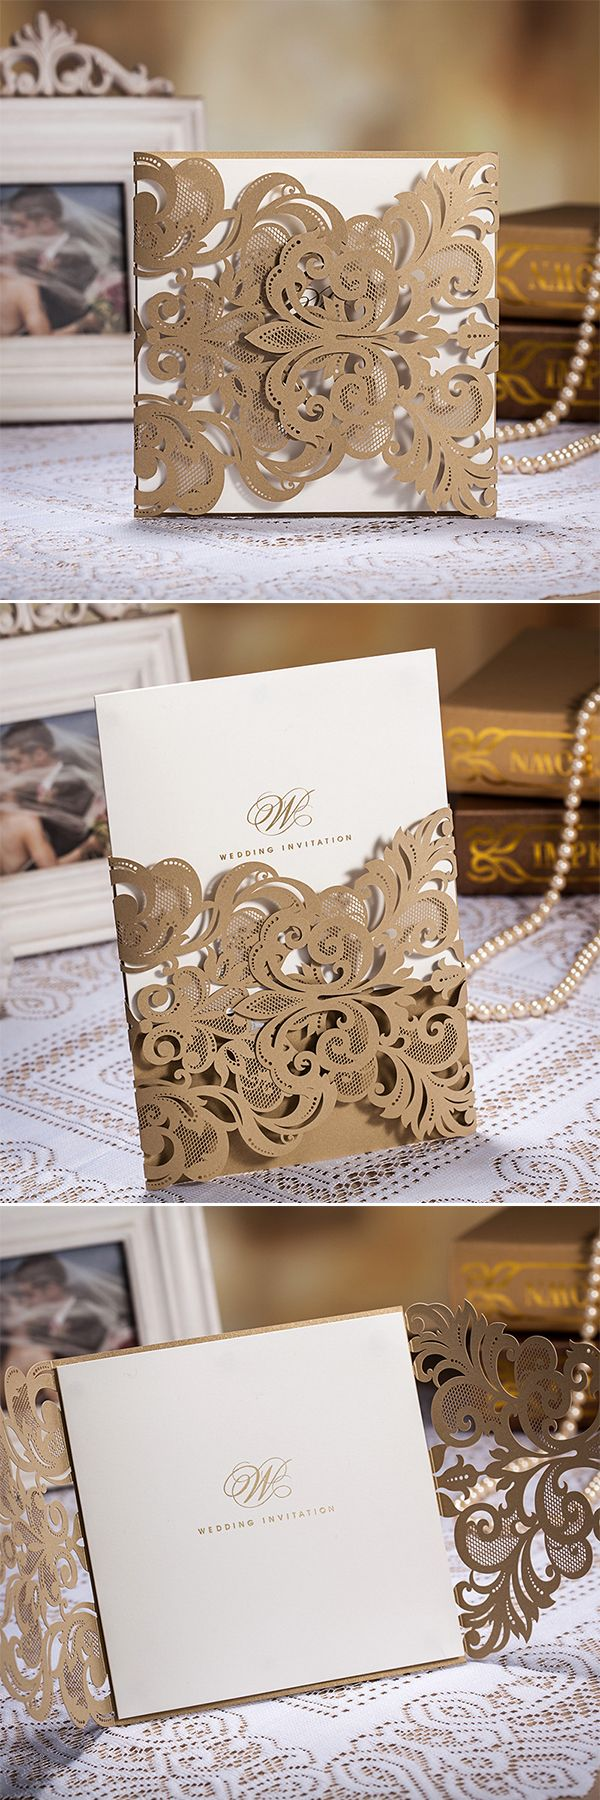 Best 25 wedding invitation supplies ideas on pinterest how to royal shade of gold laser cut cheap winter wedding invitation wlc017 monicamarmolfo Gallery